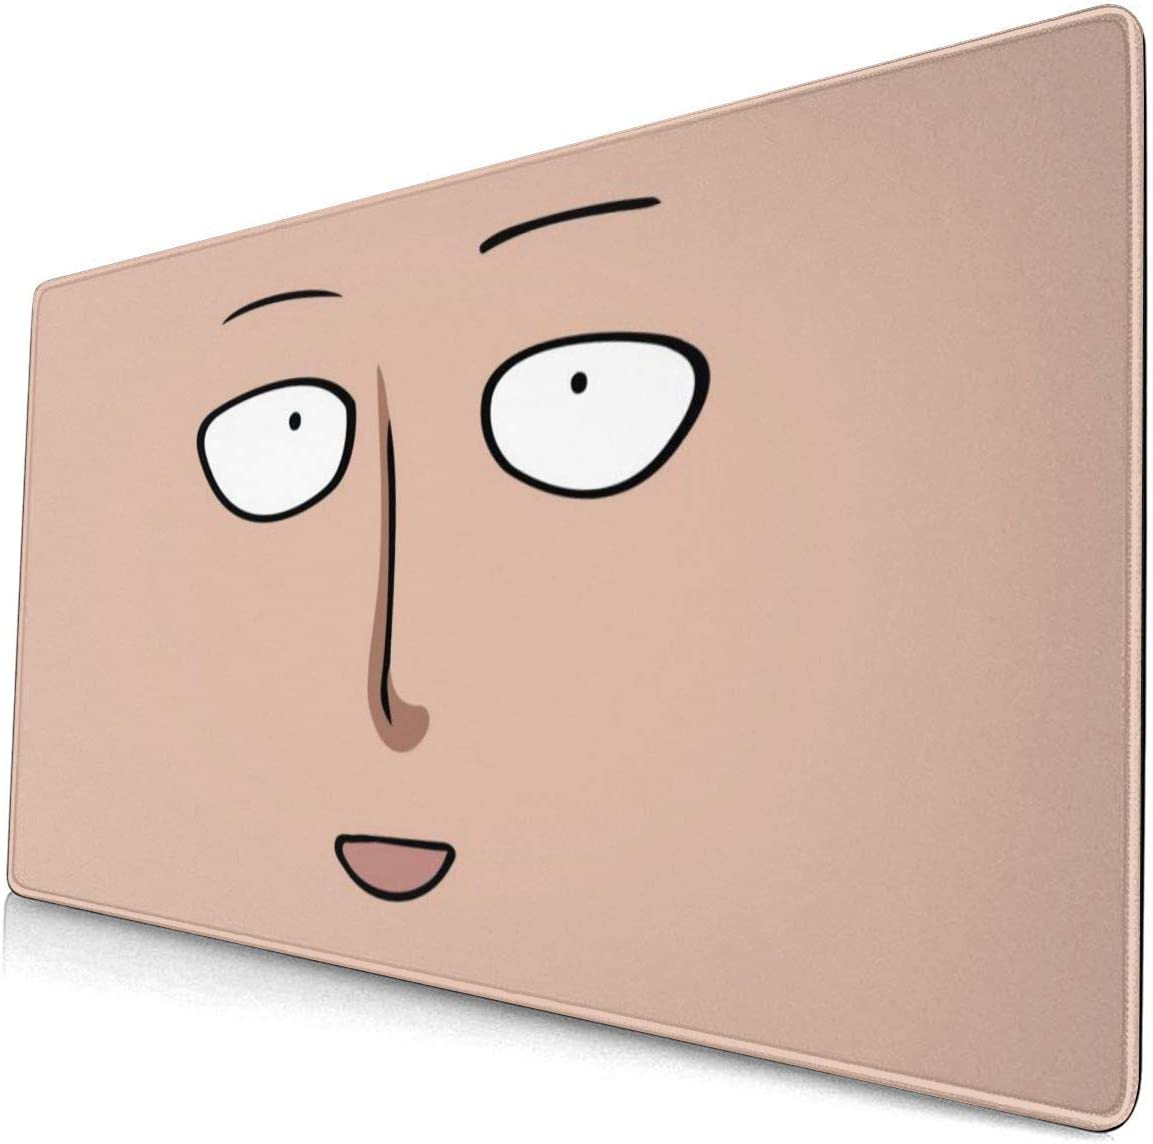 Amazon Com Anime One Punch Man Saitama Ok Face 15 8x29 5 In Large Gaming Mouse Pad Desk Mat Long Non Slip Rubber Stitched Edges Office Products I do not own one punch man, copyright goes to mad house and the original creators. large gaming mouse pad desk mat